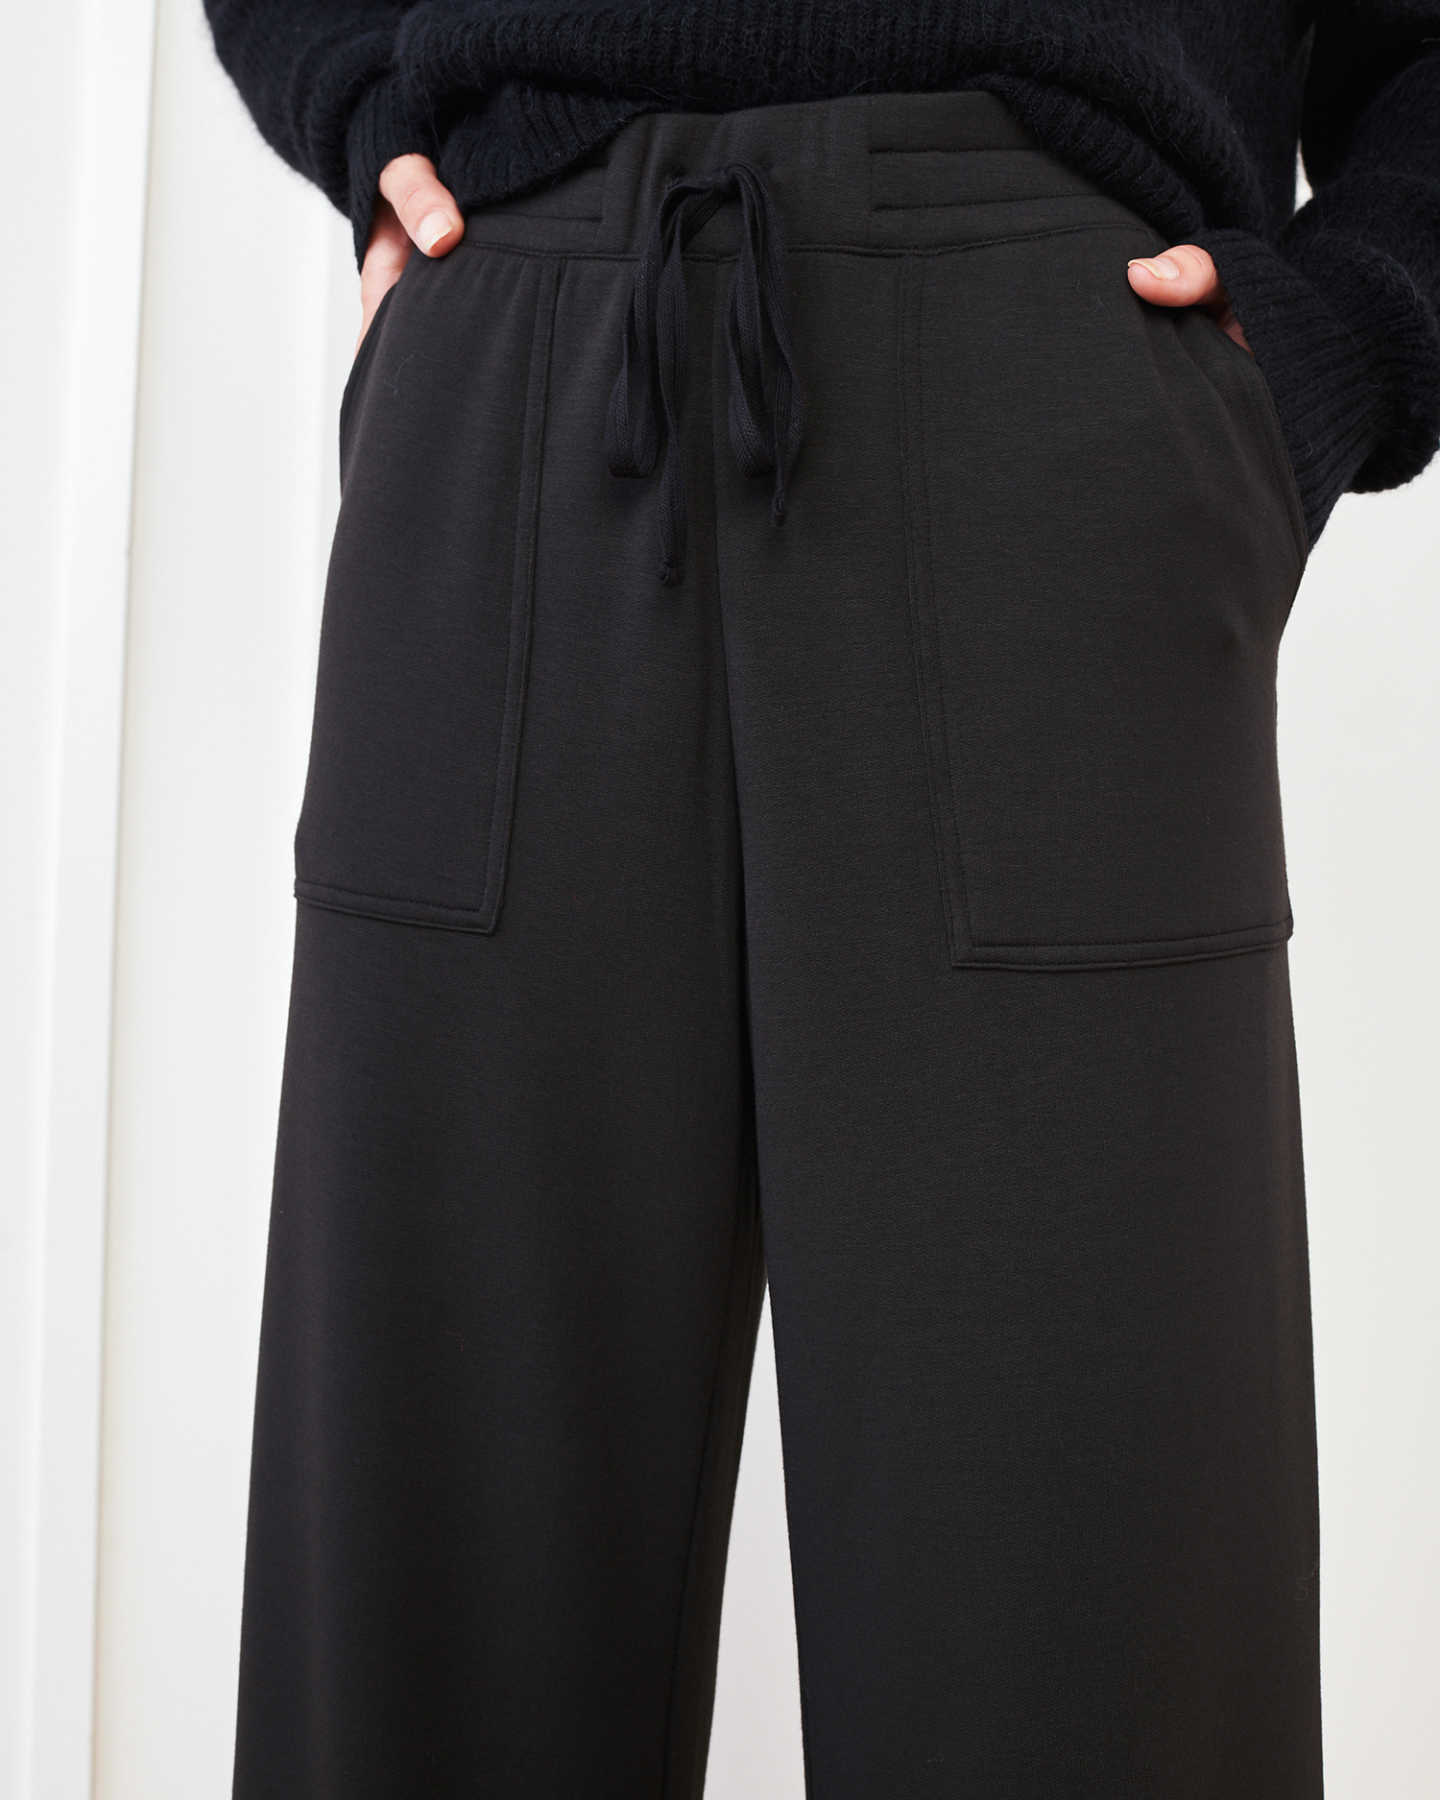 SuperSoft Fleece Wide Leg Pants - Black - 6